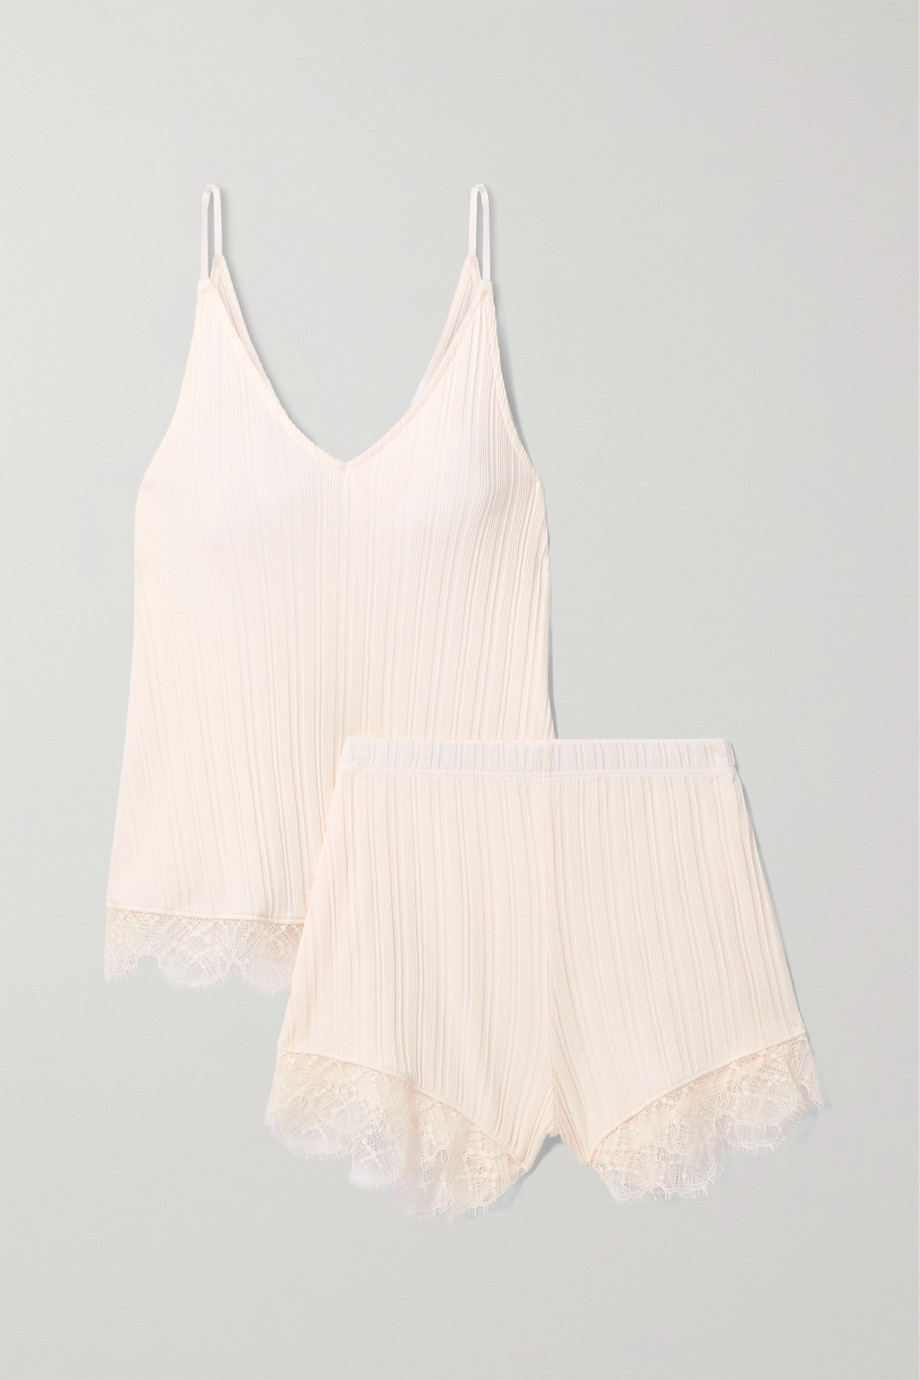 Skin Becca lace-trimmed ribbed Pima cotton pajama set